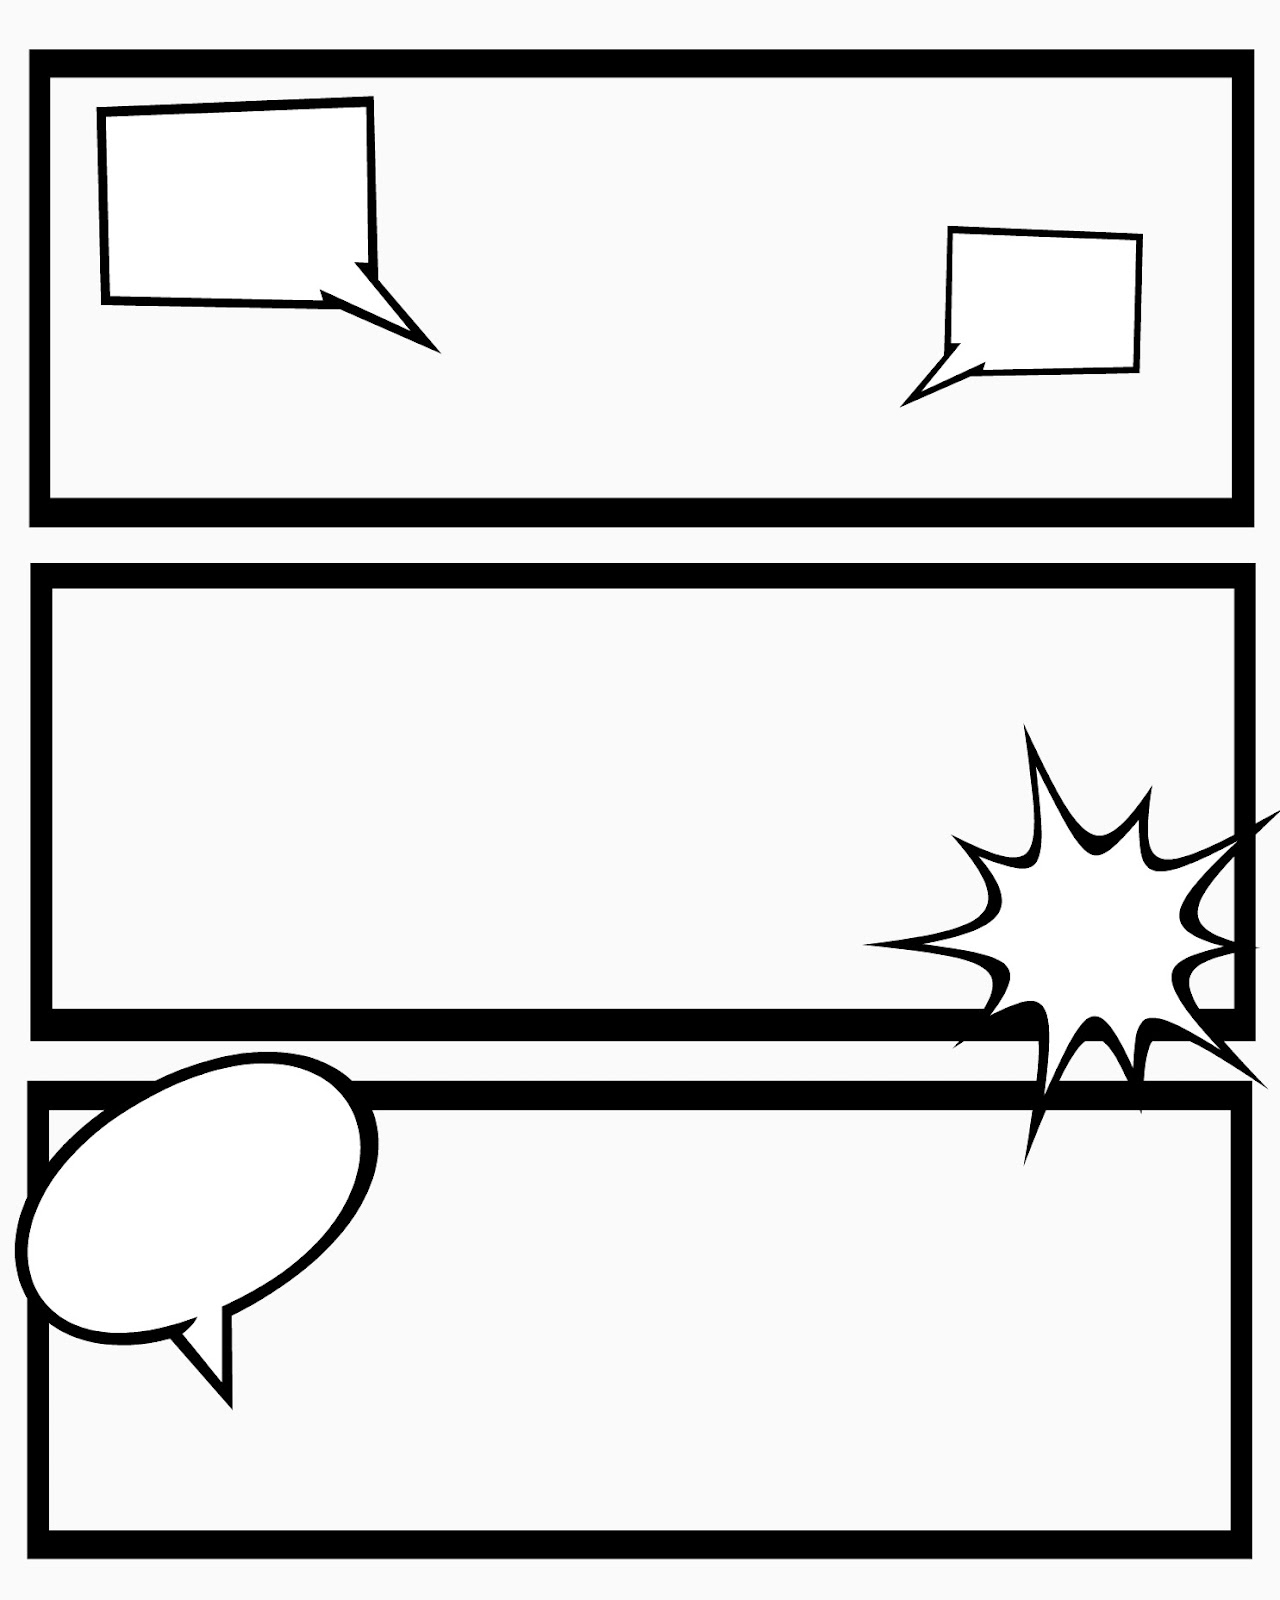 Blank Comic Book Template. comic book paper template blank layout ...